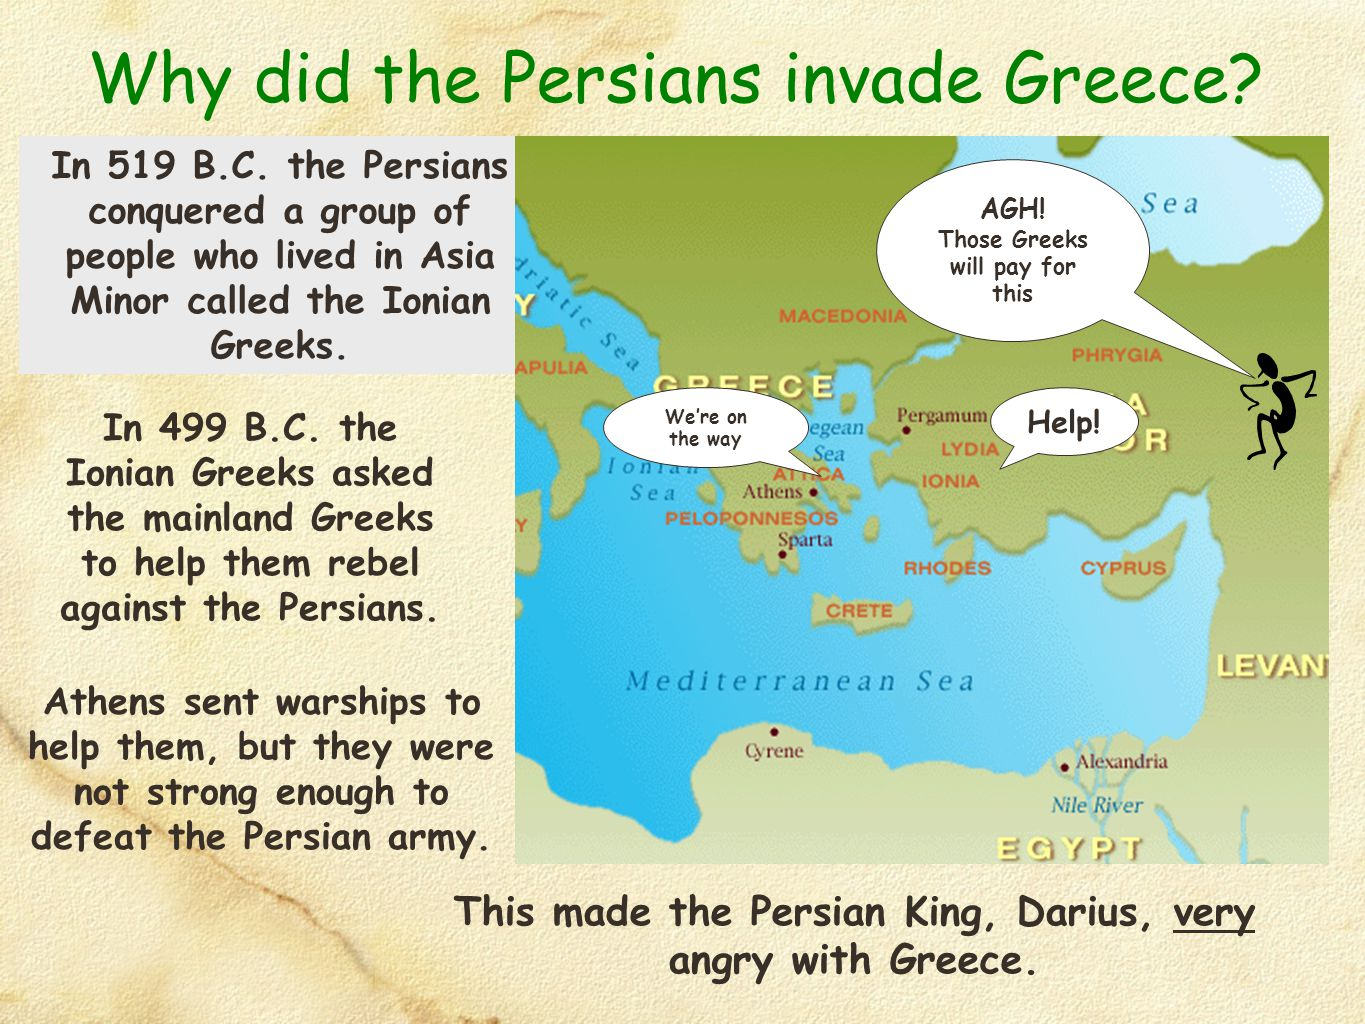 Macedonia Philip II saw the weakened state of Greece He valued Greek culture – his son Alexander was educated in Athens He took over Greece before any other power could Was Persia next?